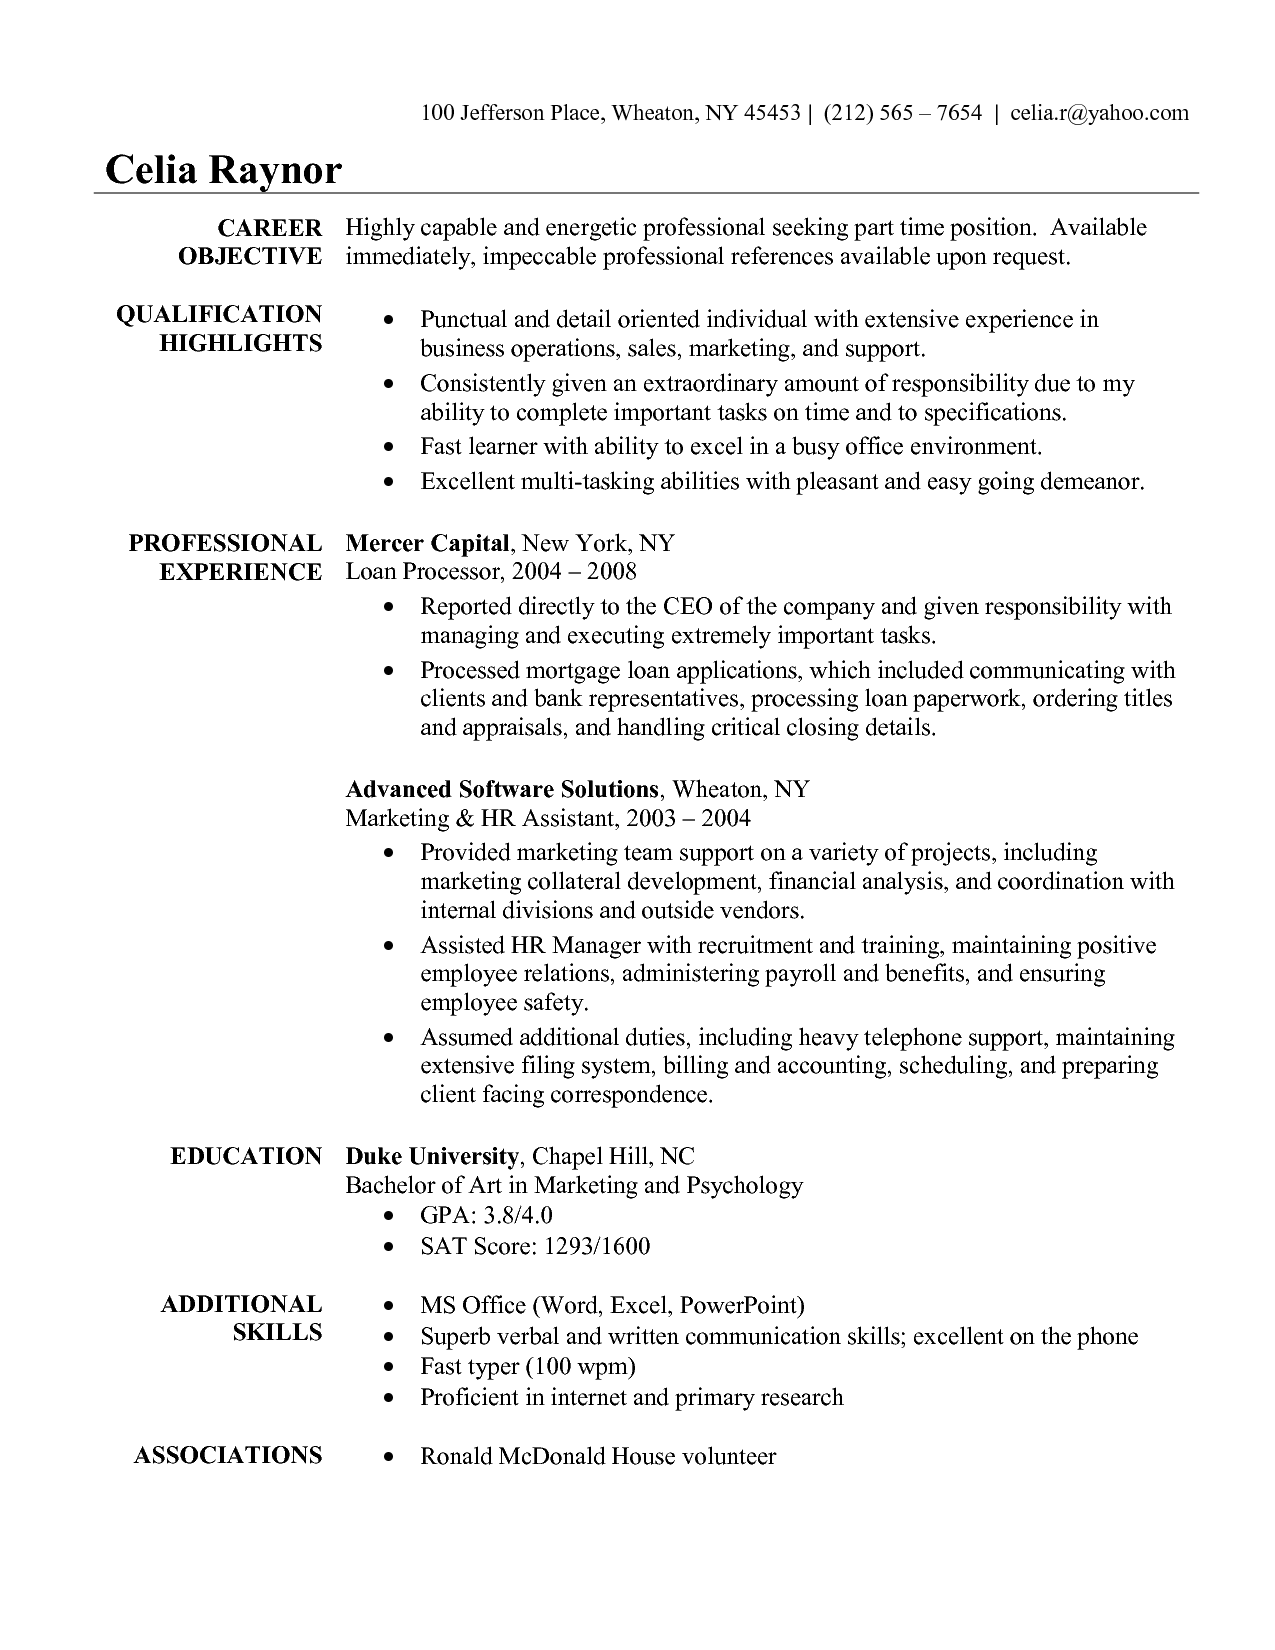 Administrative Assistant Job Description Resume Resume Sample For Administrative Assistant Resume Samples For